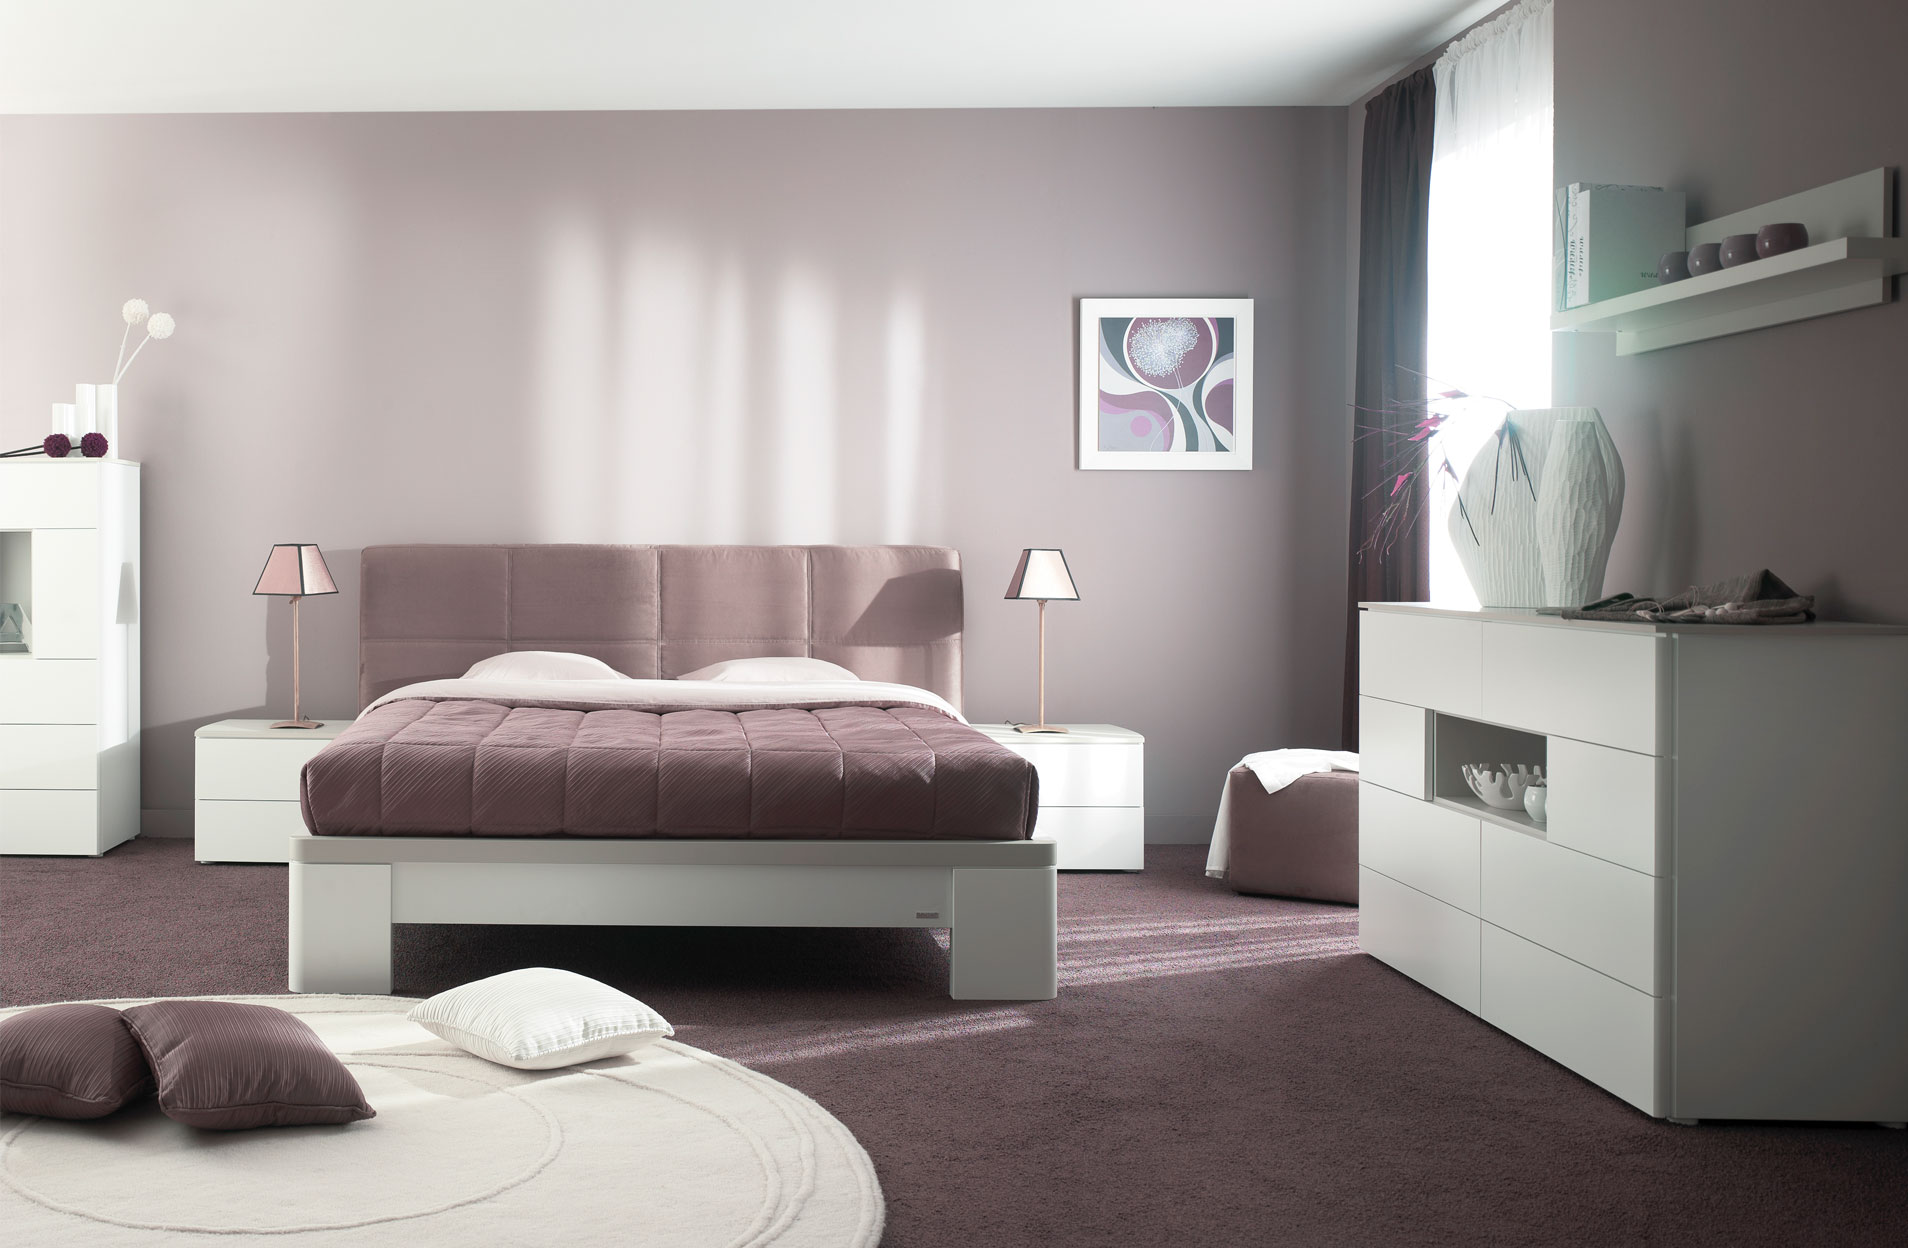 Inspiration d coration de chambre contemporaine gautier opalia for Idee chambre a coucher adulte